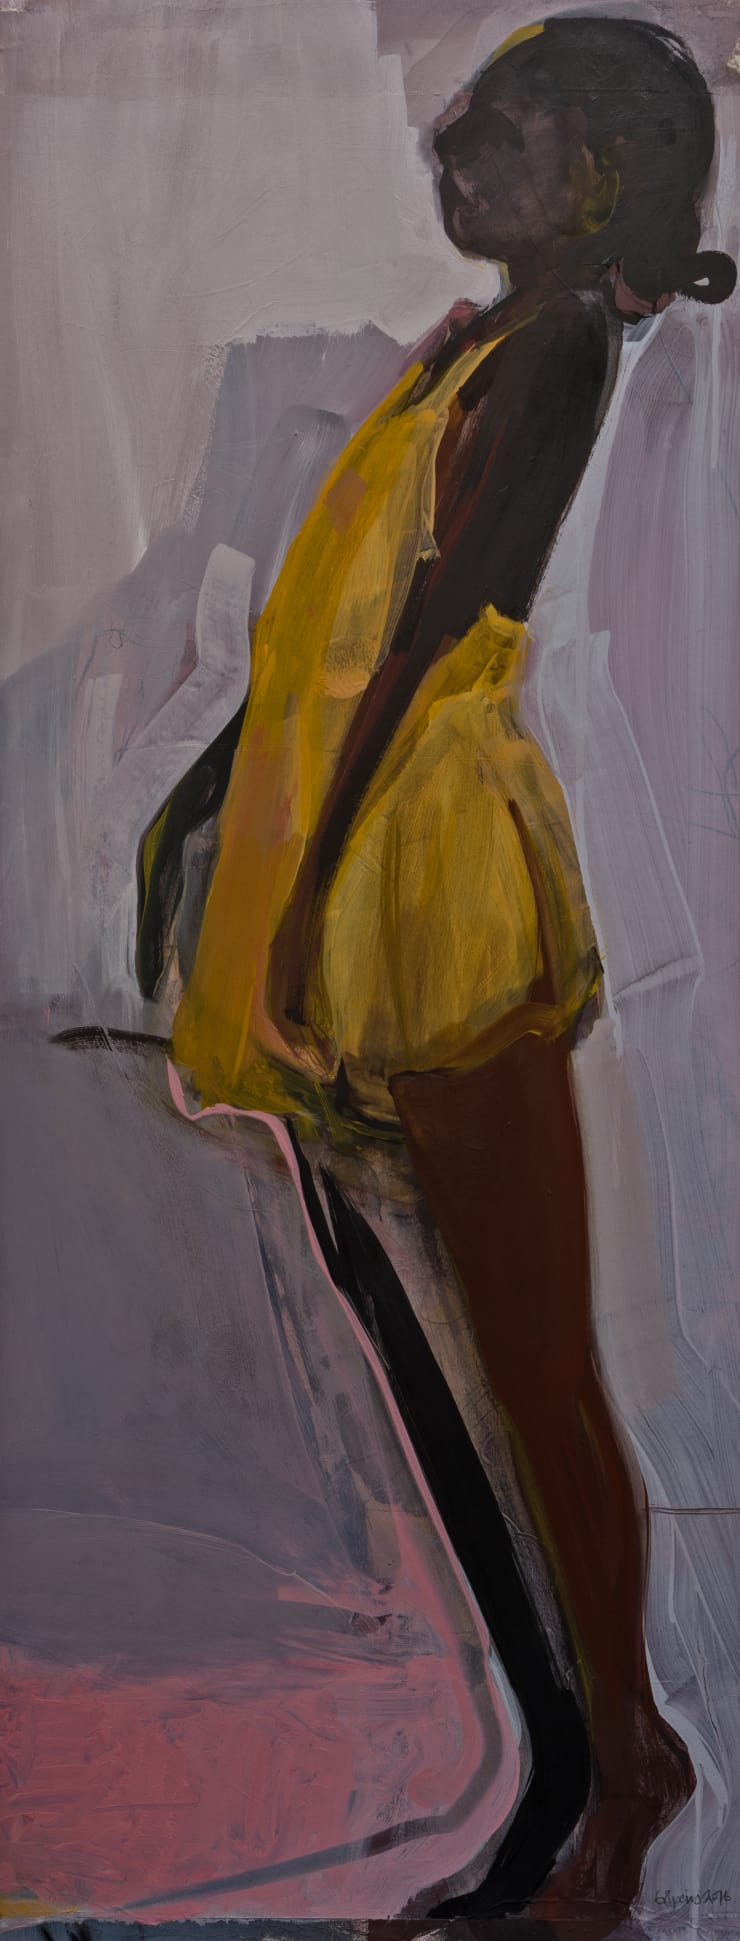 Elaine Speirs  Ponte City Girl IV, 2014  Oil on paper  43 7/10 × 17 3/10 in  111 × 44 cm